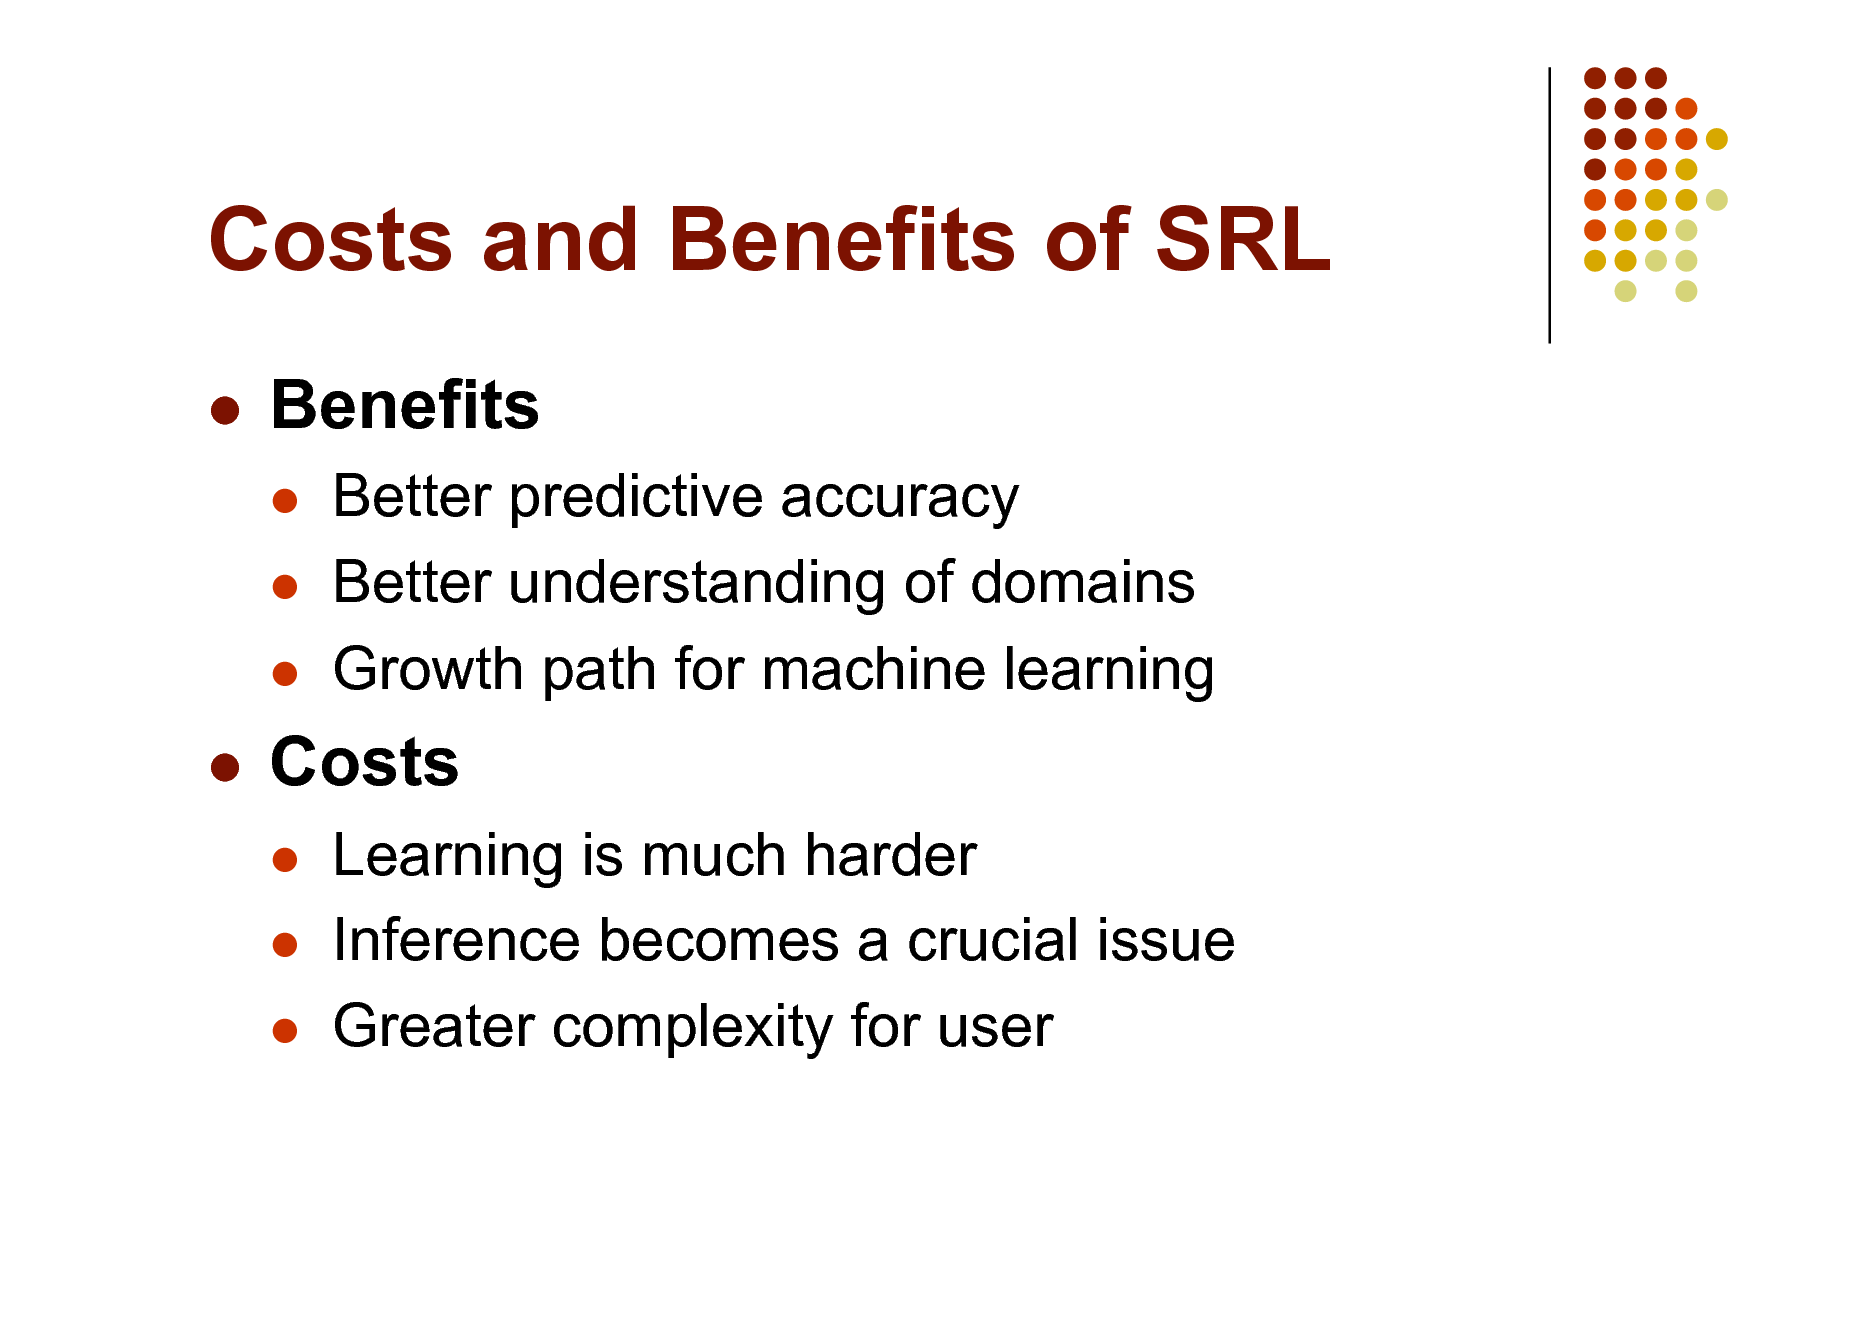 Slide: Costs and Benefits of SRL   Benefits     Better predictive accuracy Better understanding of domains Growth path for machine learning Learning is much harder Inference becomes a crucial issue Greater complexity for user    Costs